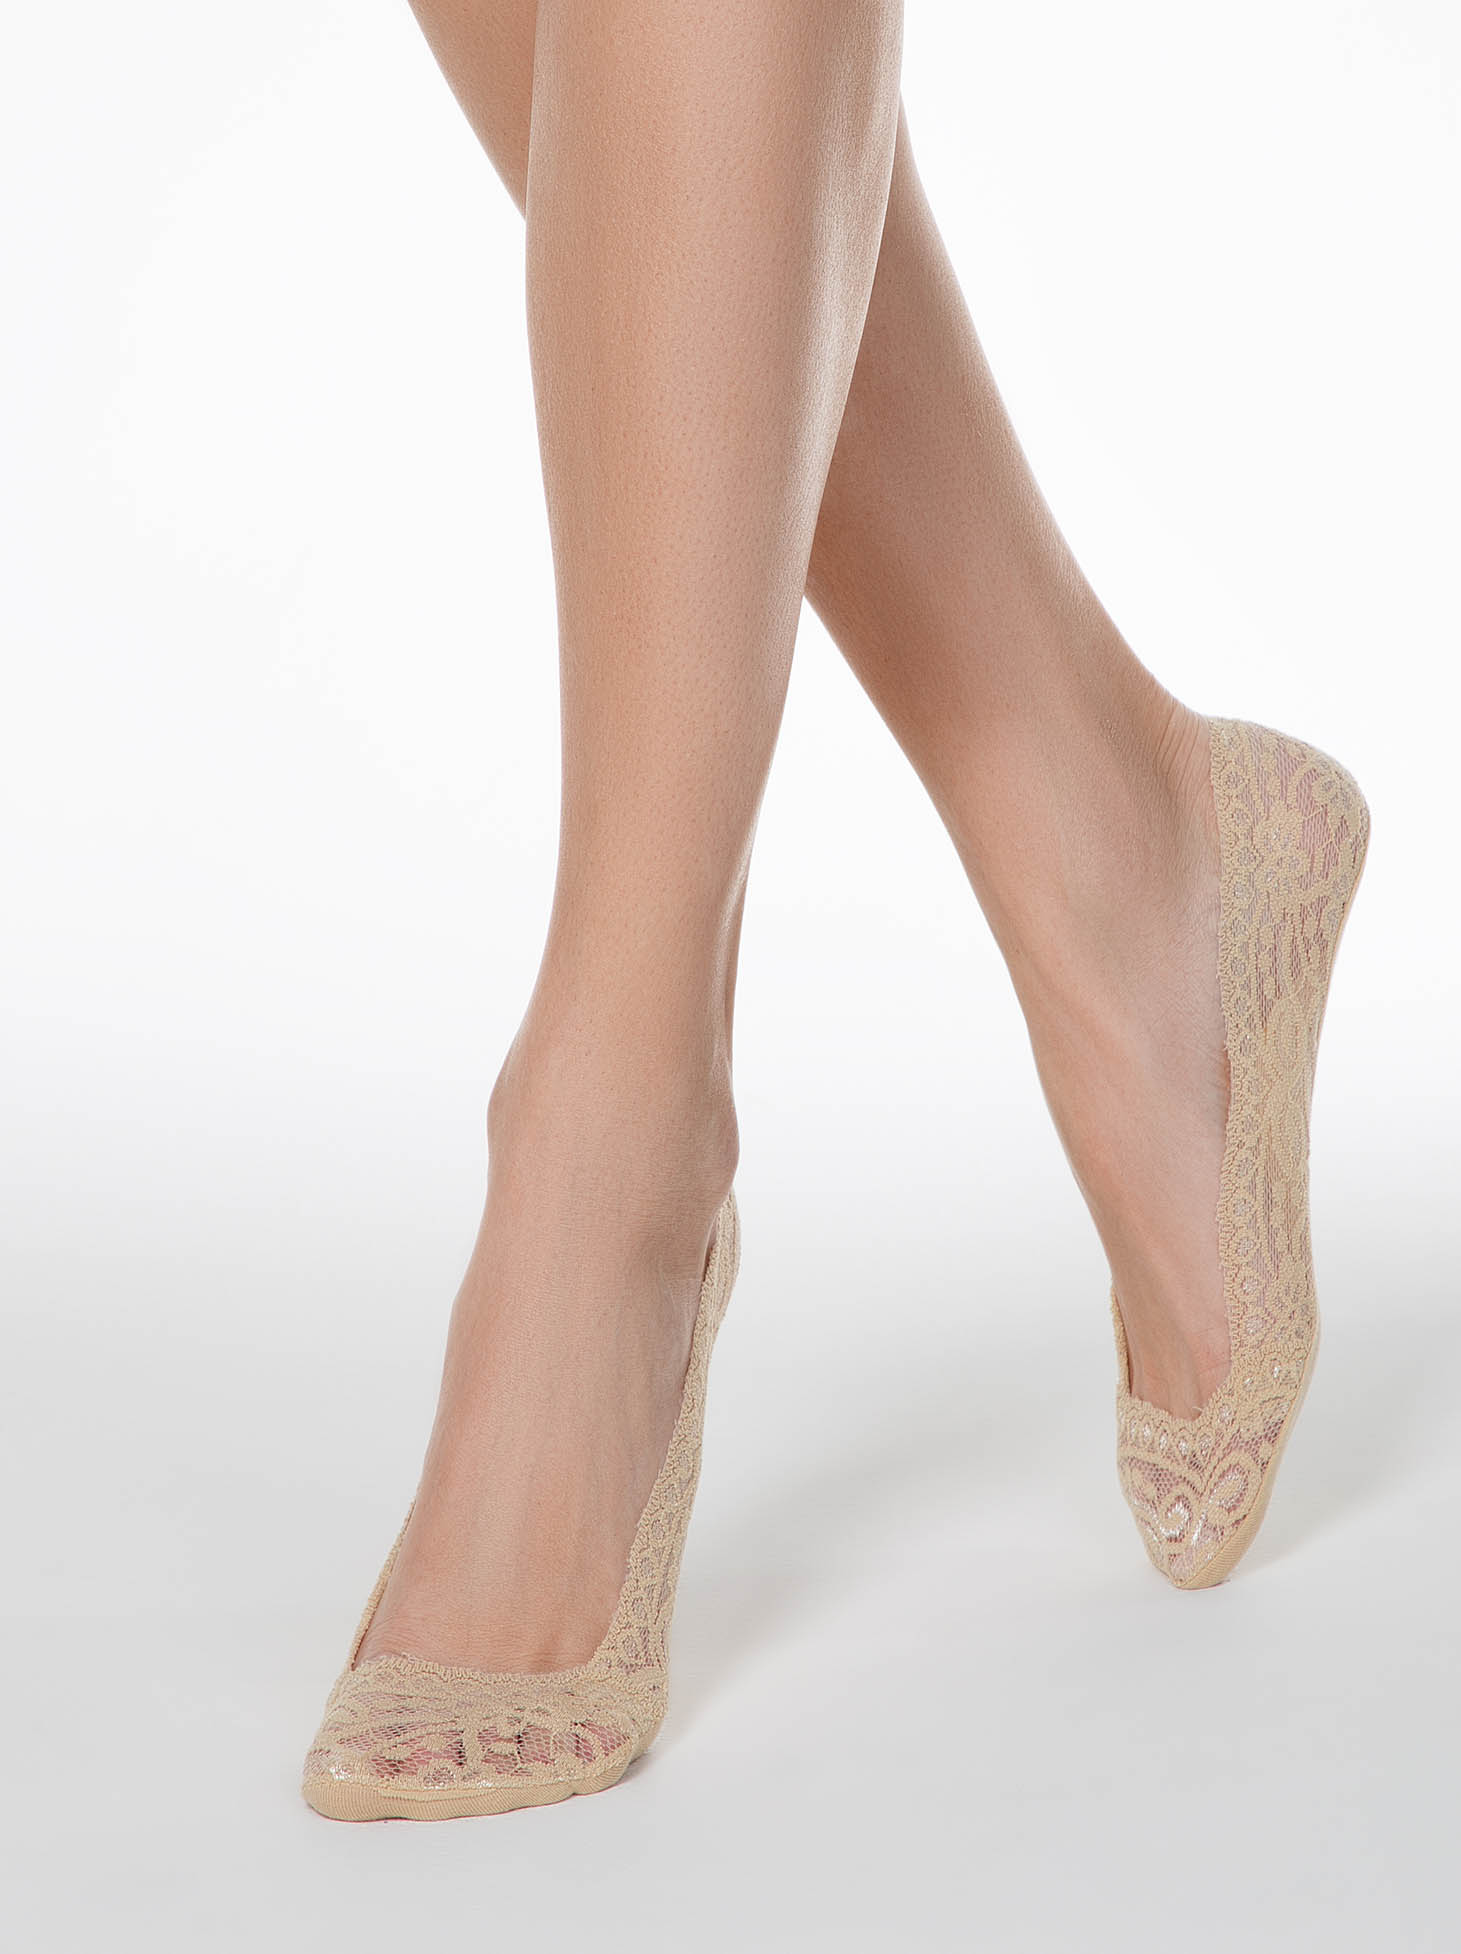 Nude socks from laced fabric elastic cotton